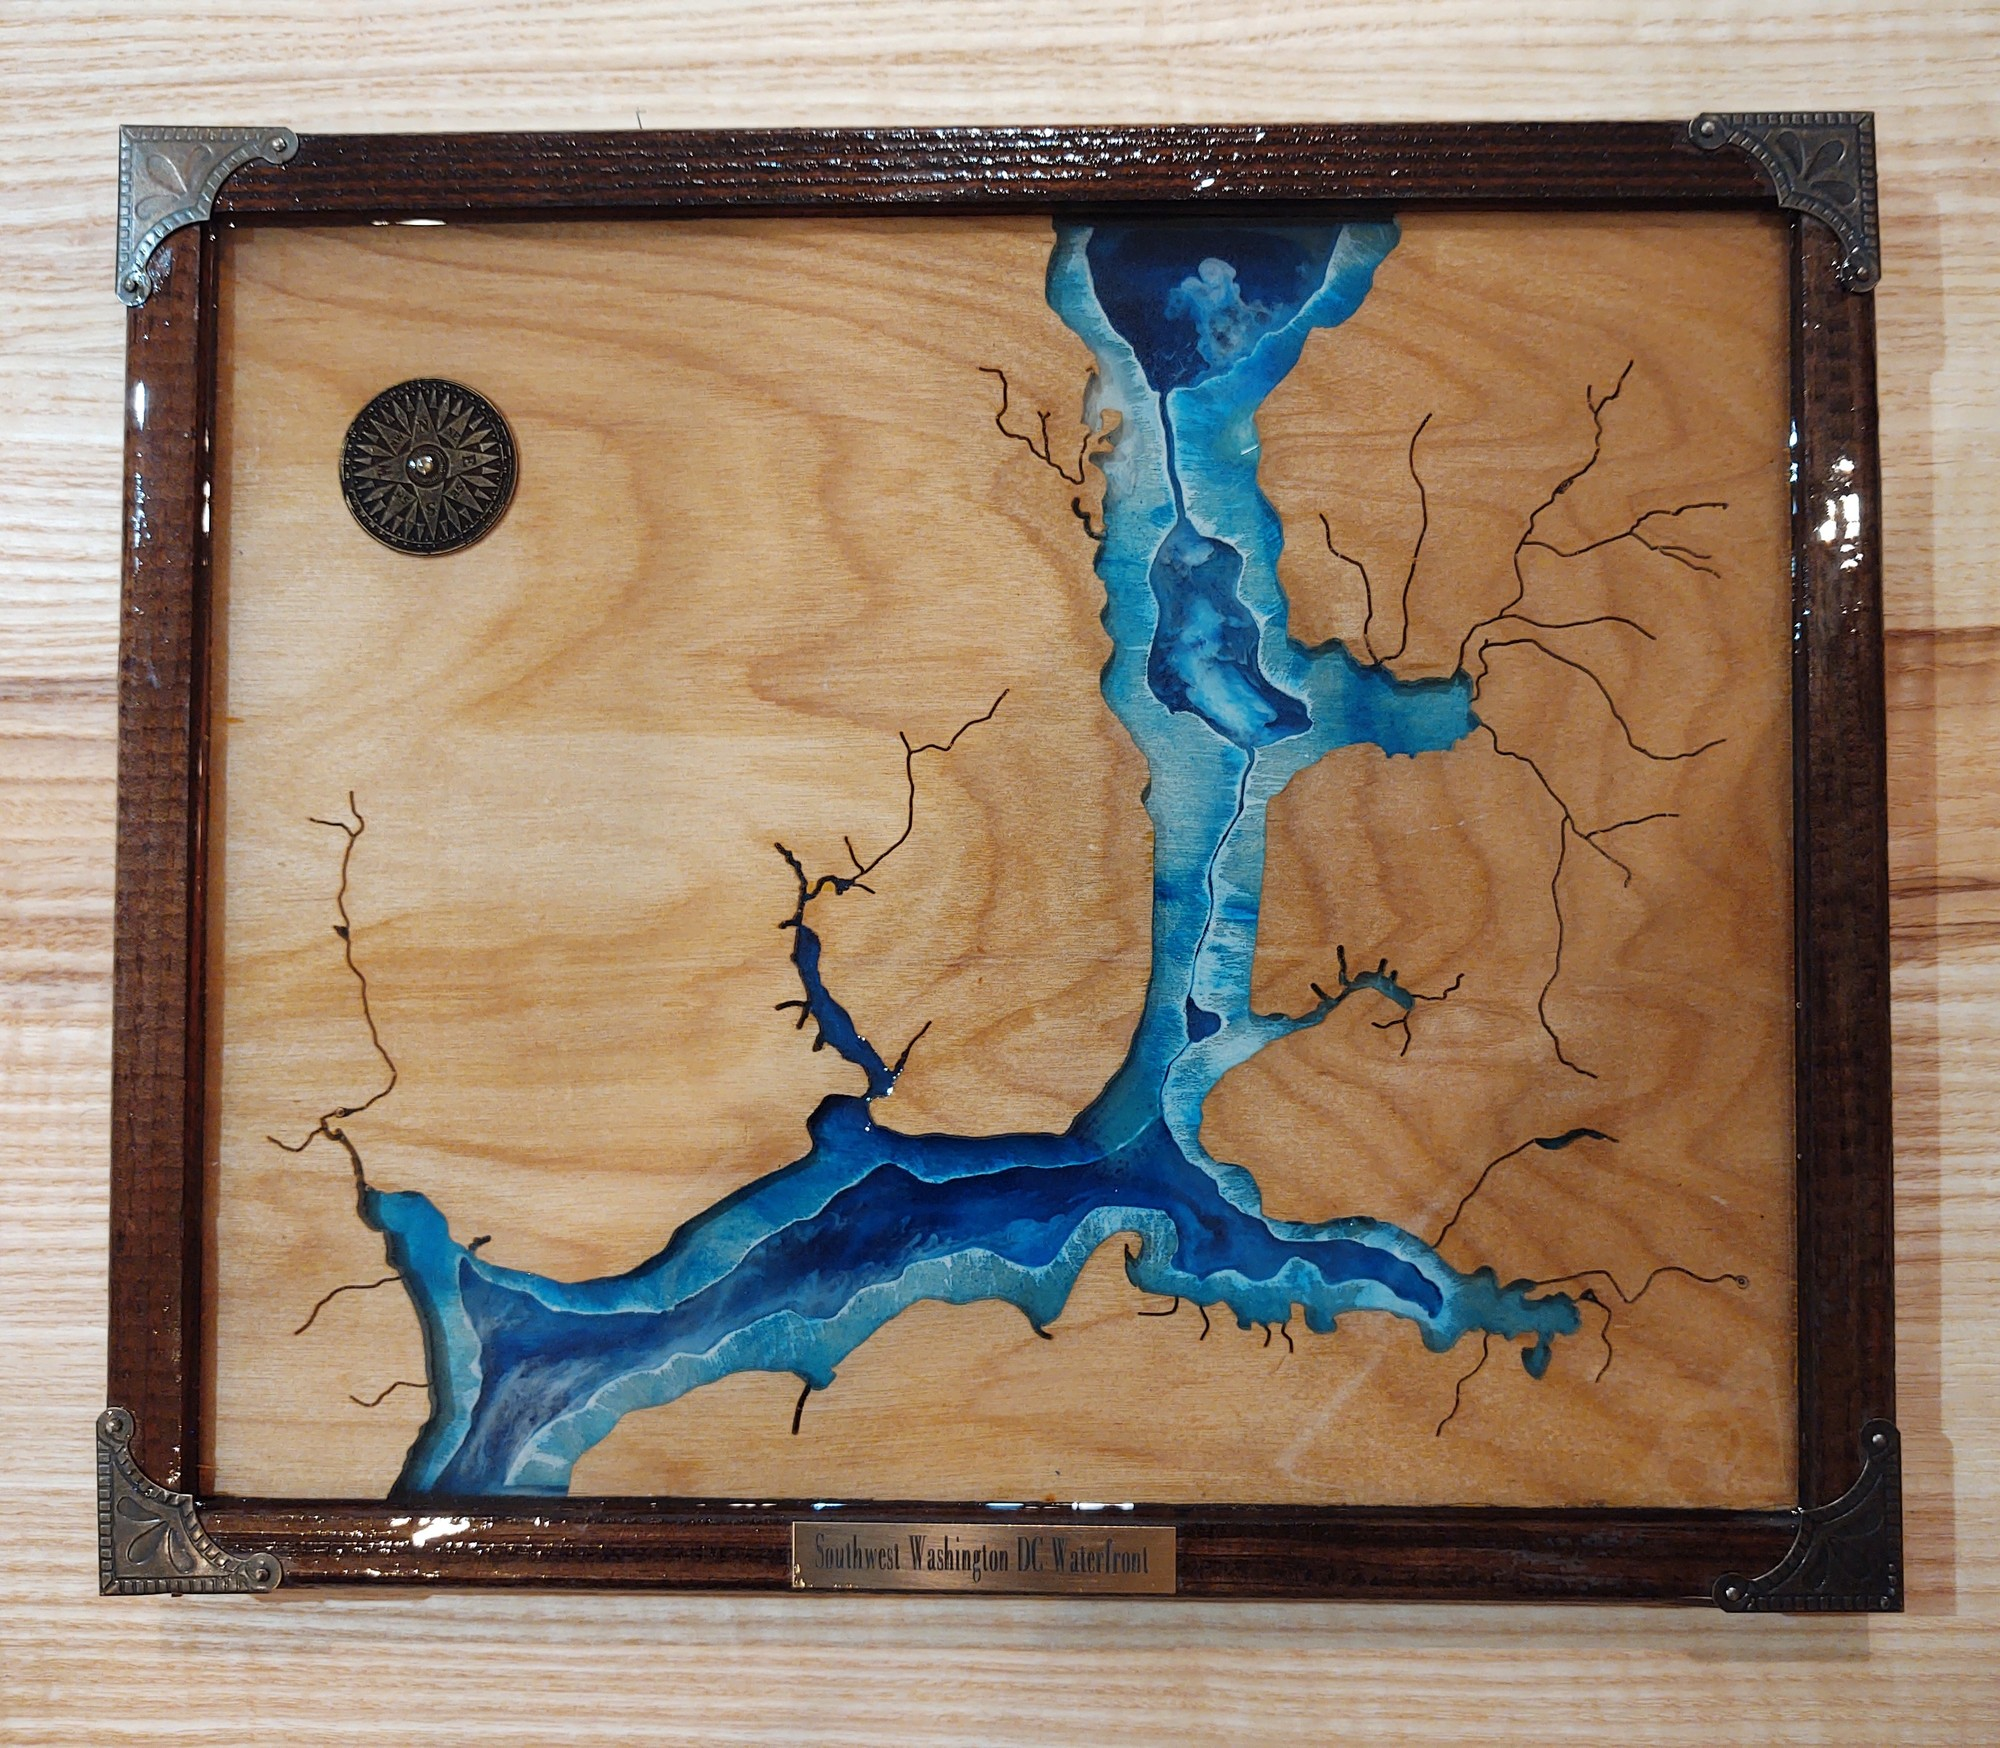 Southwest Washington DC  Waterfront Map<br /> Hand Cut Reclaimed Wood<br /> No Laer Or CNC Used<br /> Epoxy, Resin, Metal<br /> SWDC<br /> 12x14.5